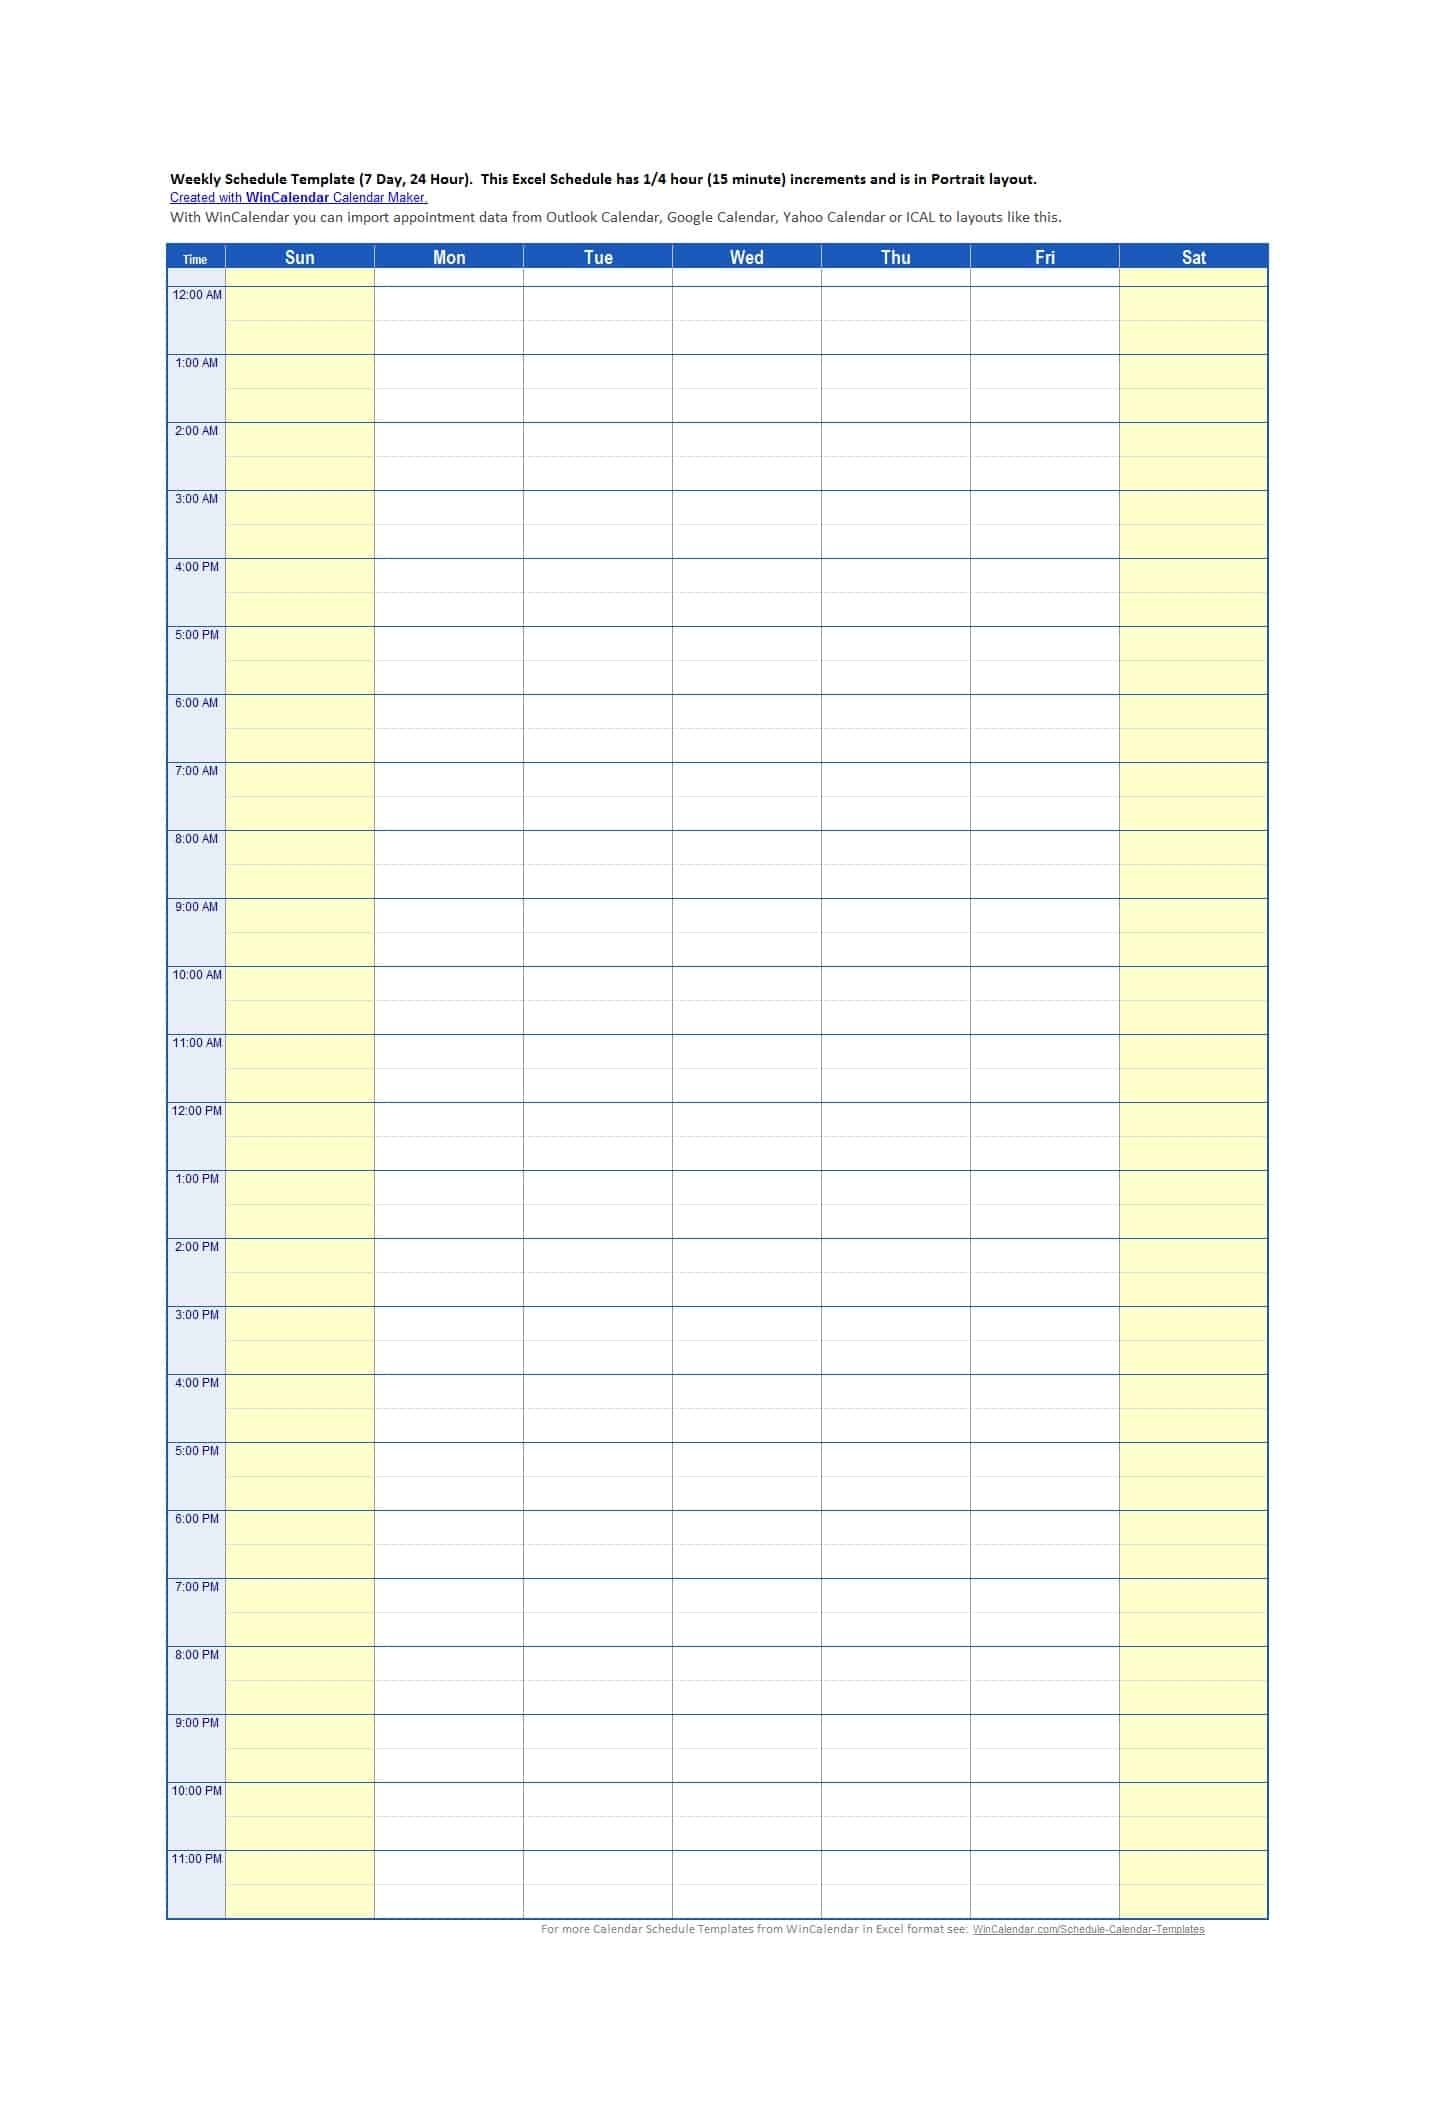 43 Effective Hourly Schedule Templates (Excel & Ms Word) ᐅ inside Time Slot Template Schedule Excel